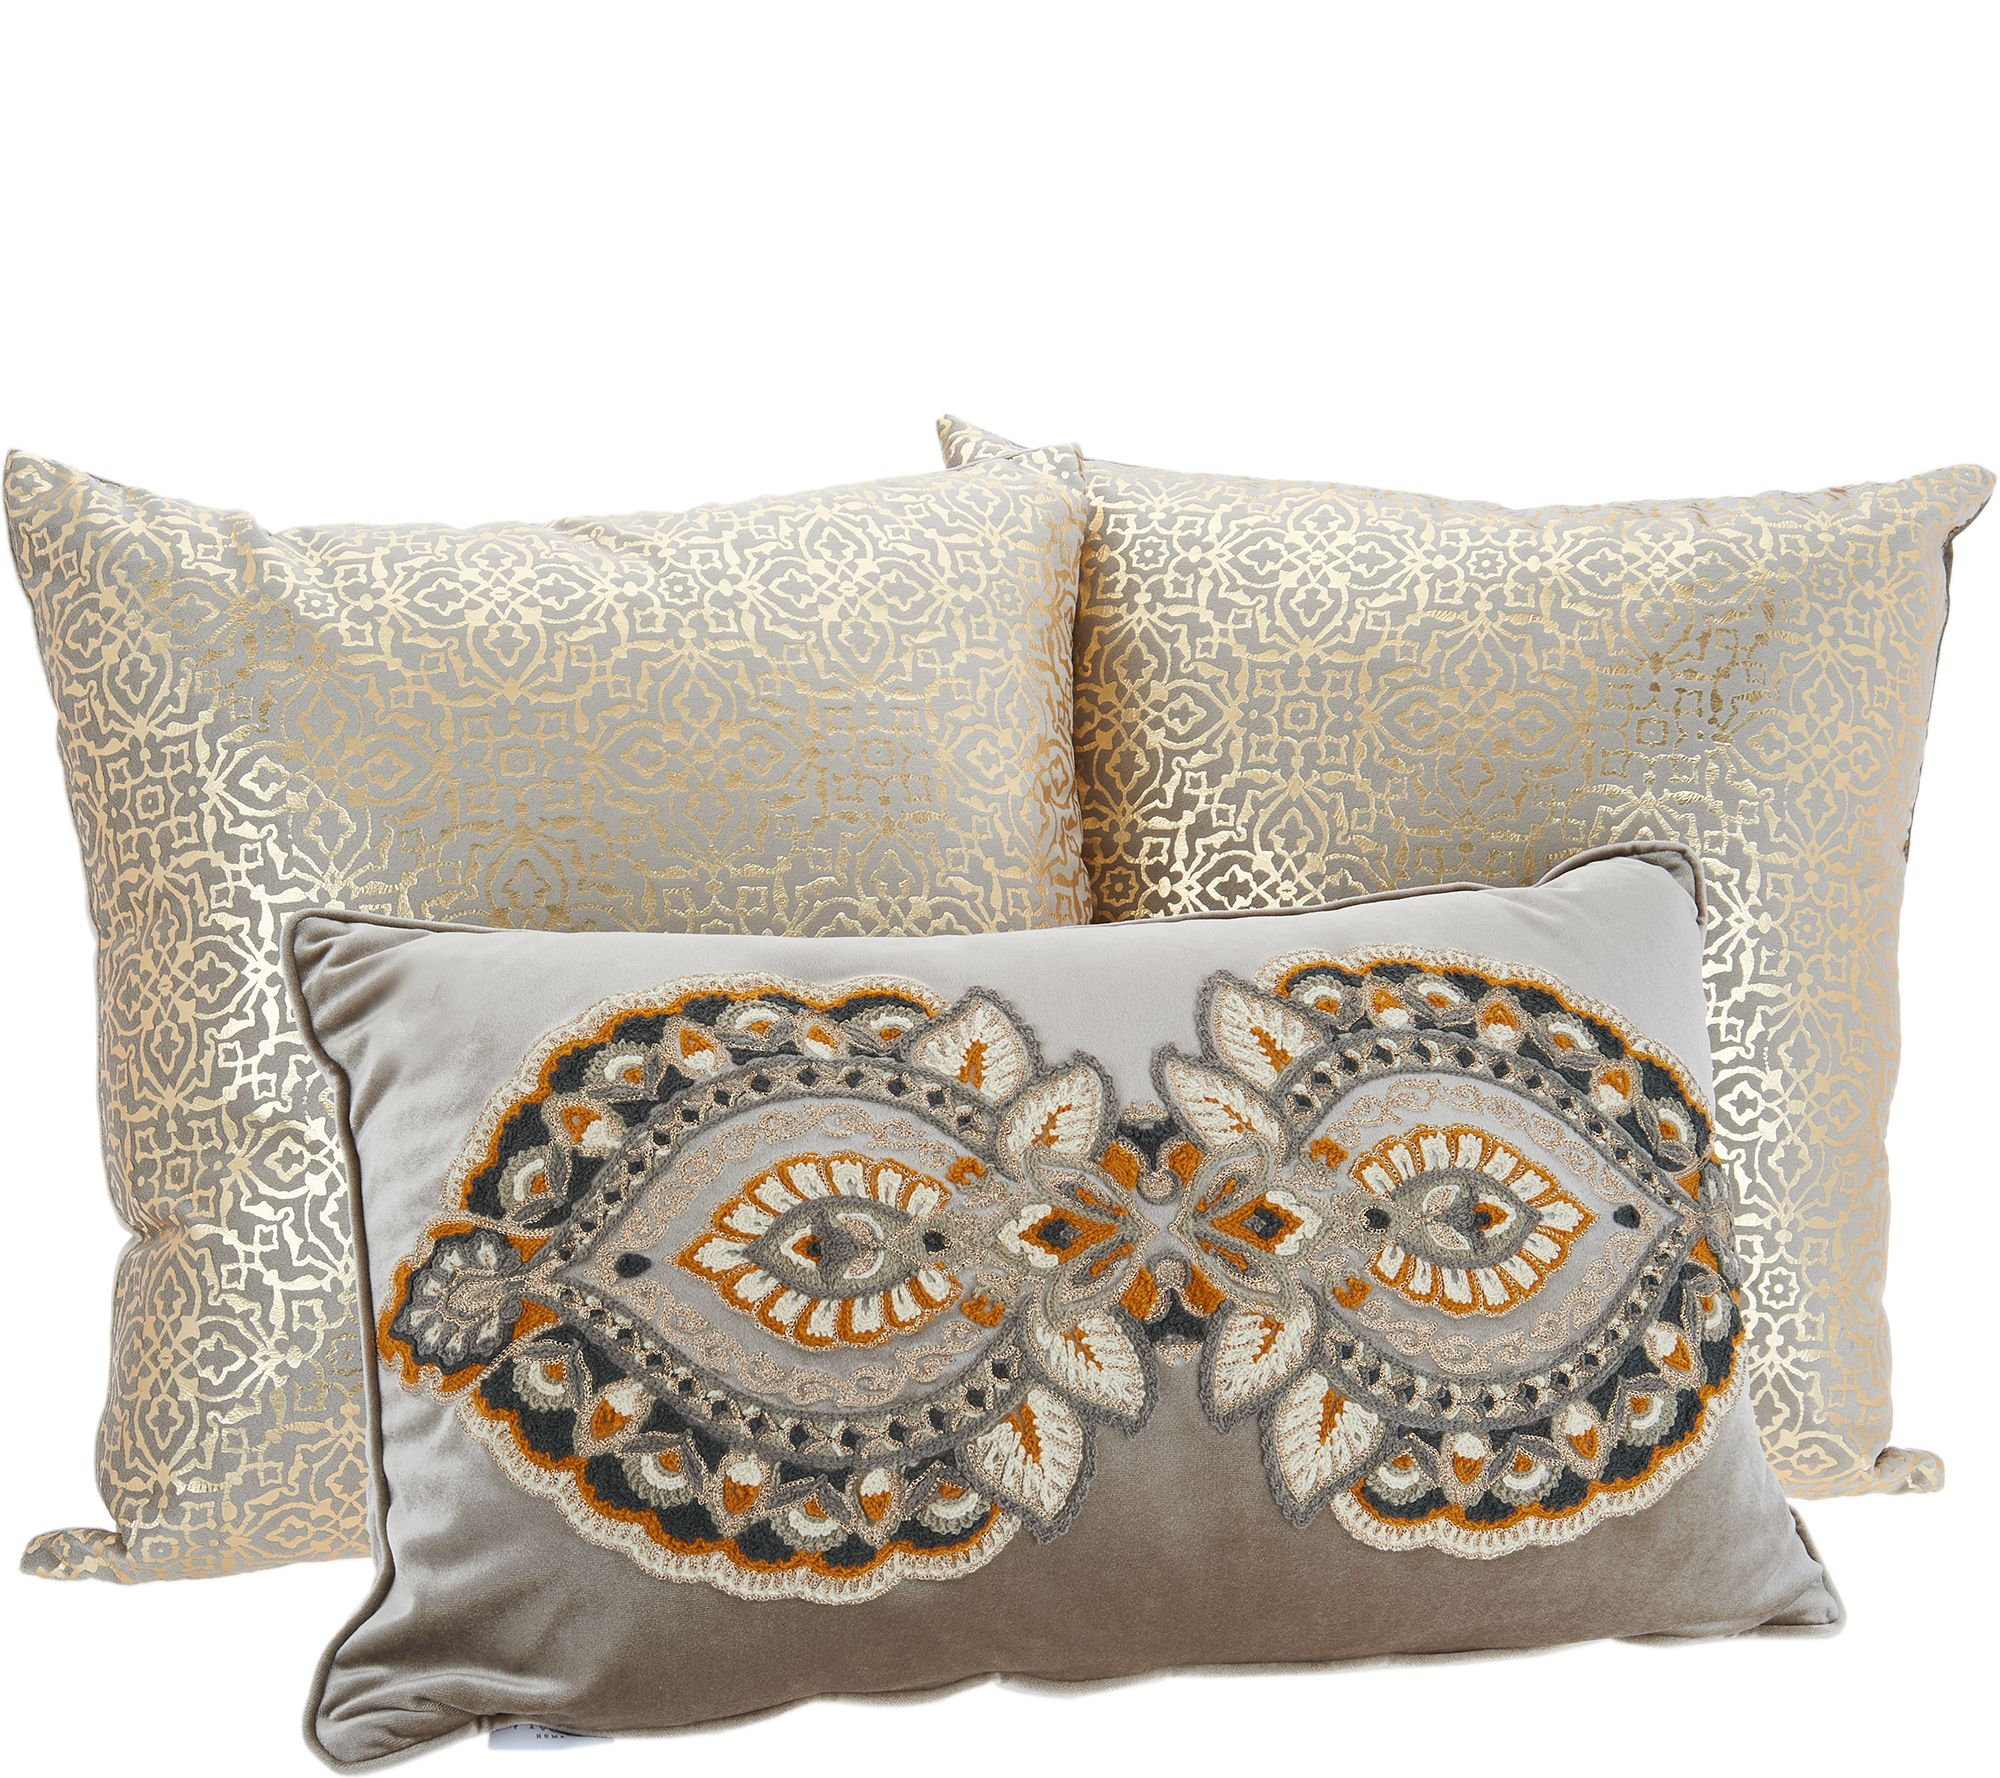 in tags room pillow couch farmhouse decor to for highest plan adjust pillows throw home fetching living rustic intention design your quality groovy